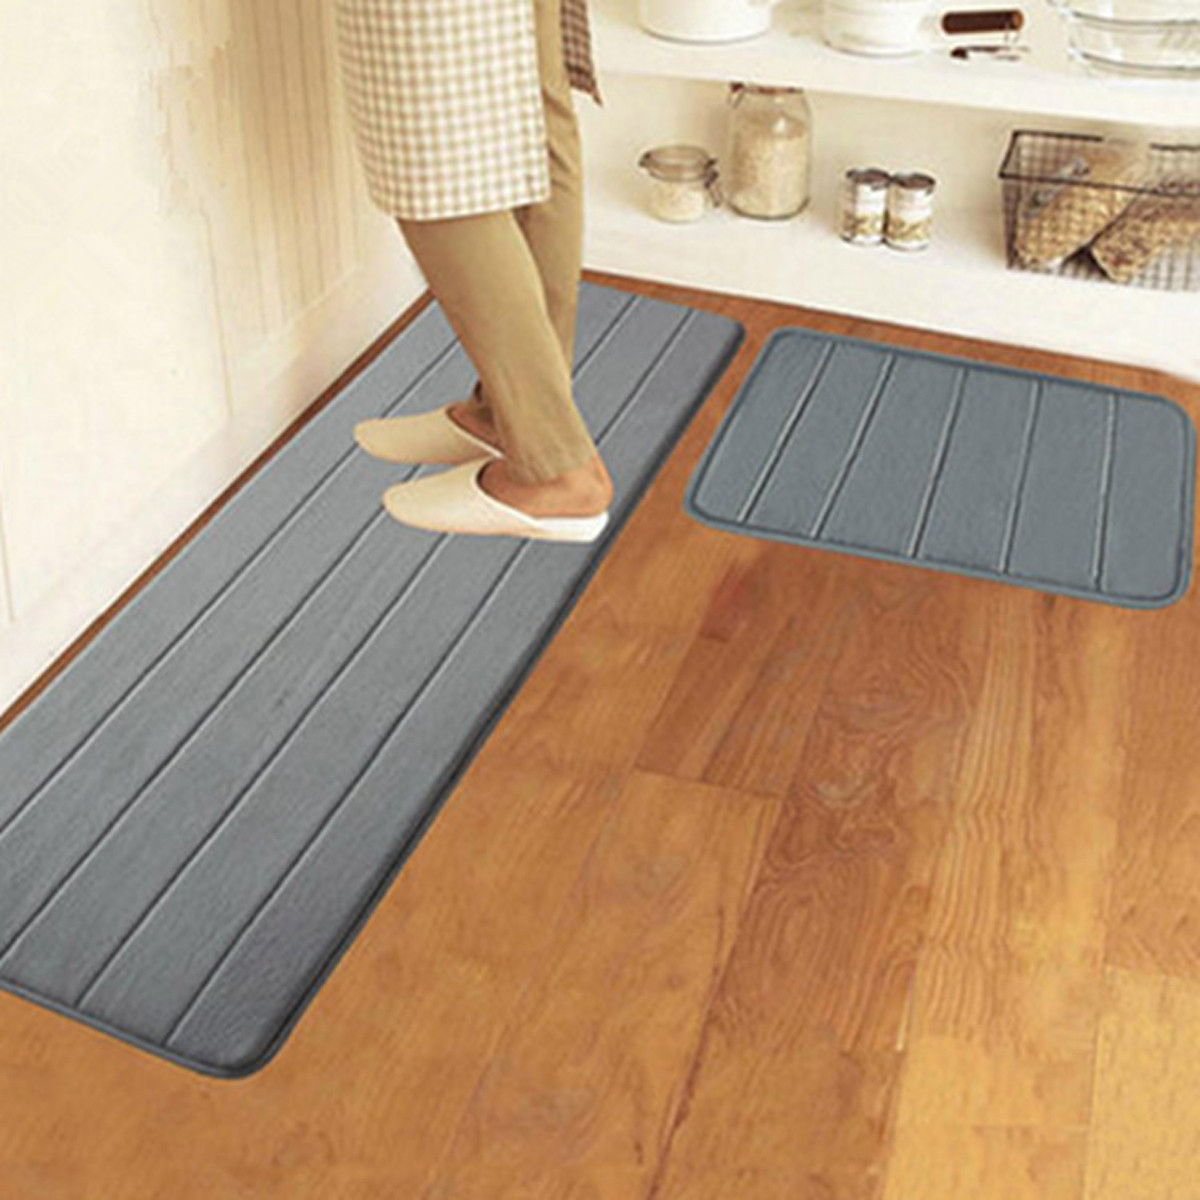 40x120cm memory foam washable bedroom floor pad non slip Washable bathroom carpet cut to fit